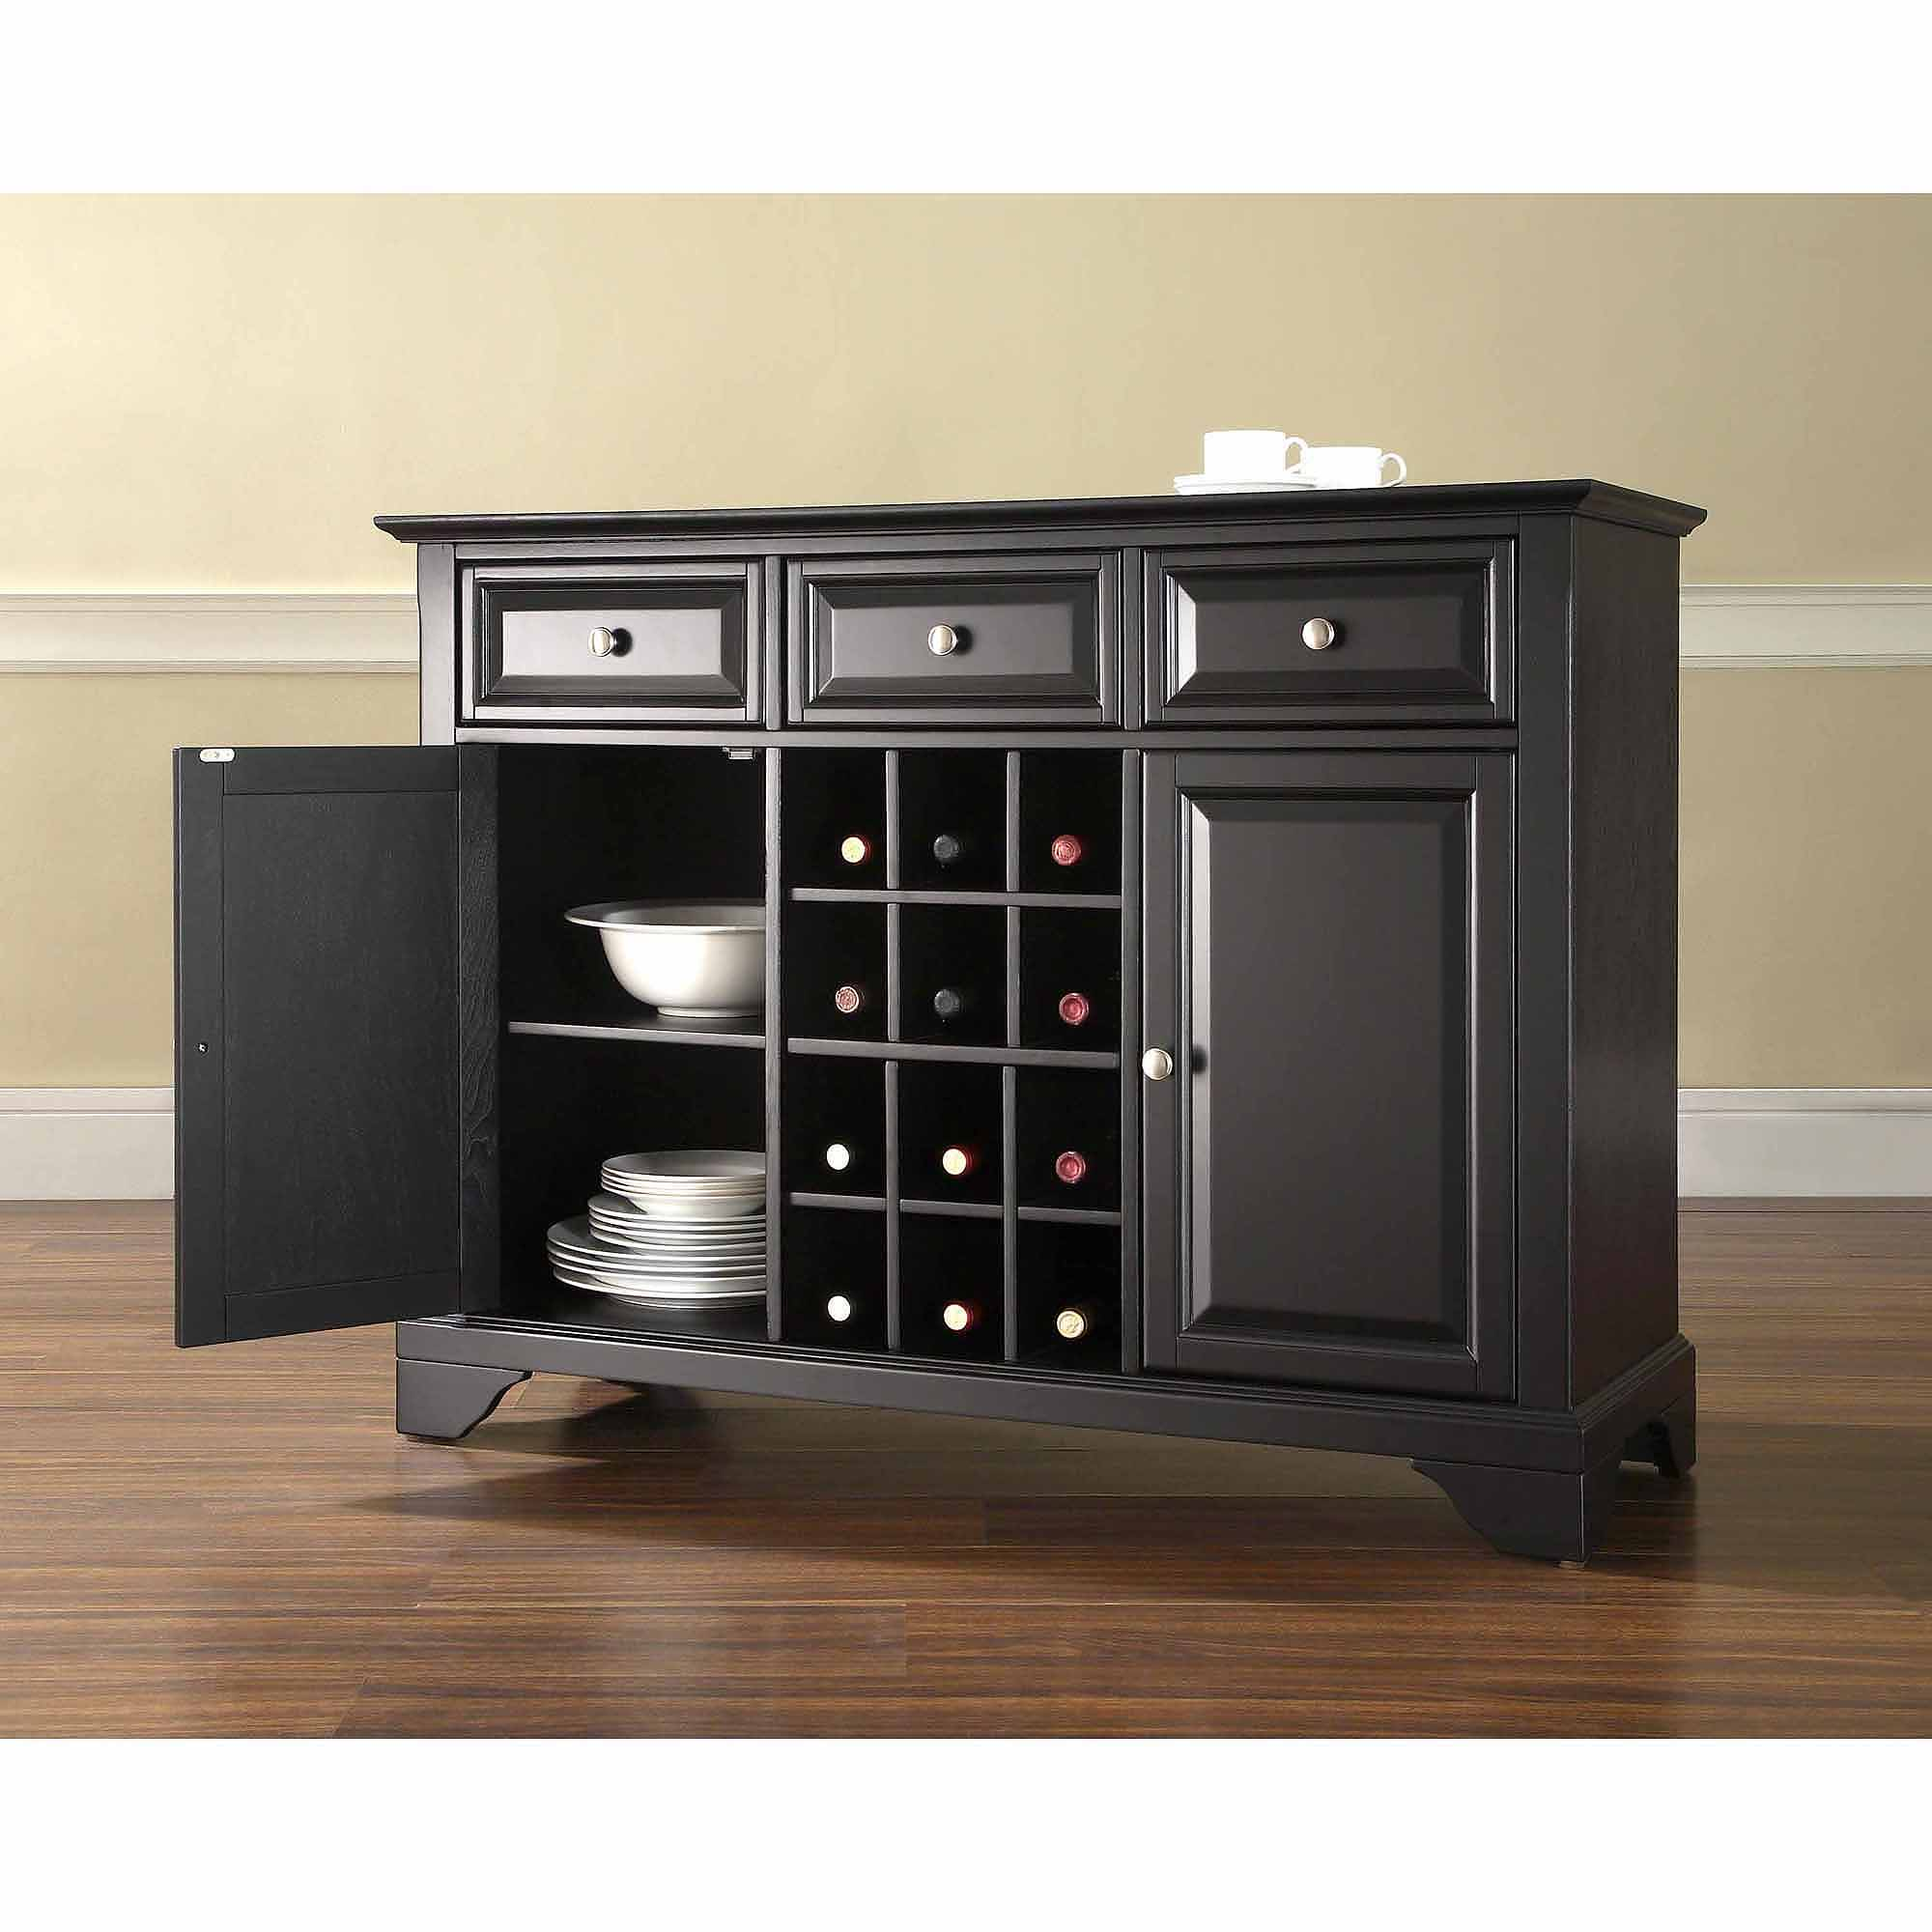 crosley furniture lafayette buffet server and sideboard cabinet with wine storage - Cold Buffet Server